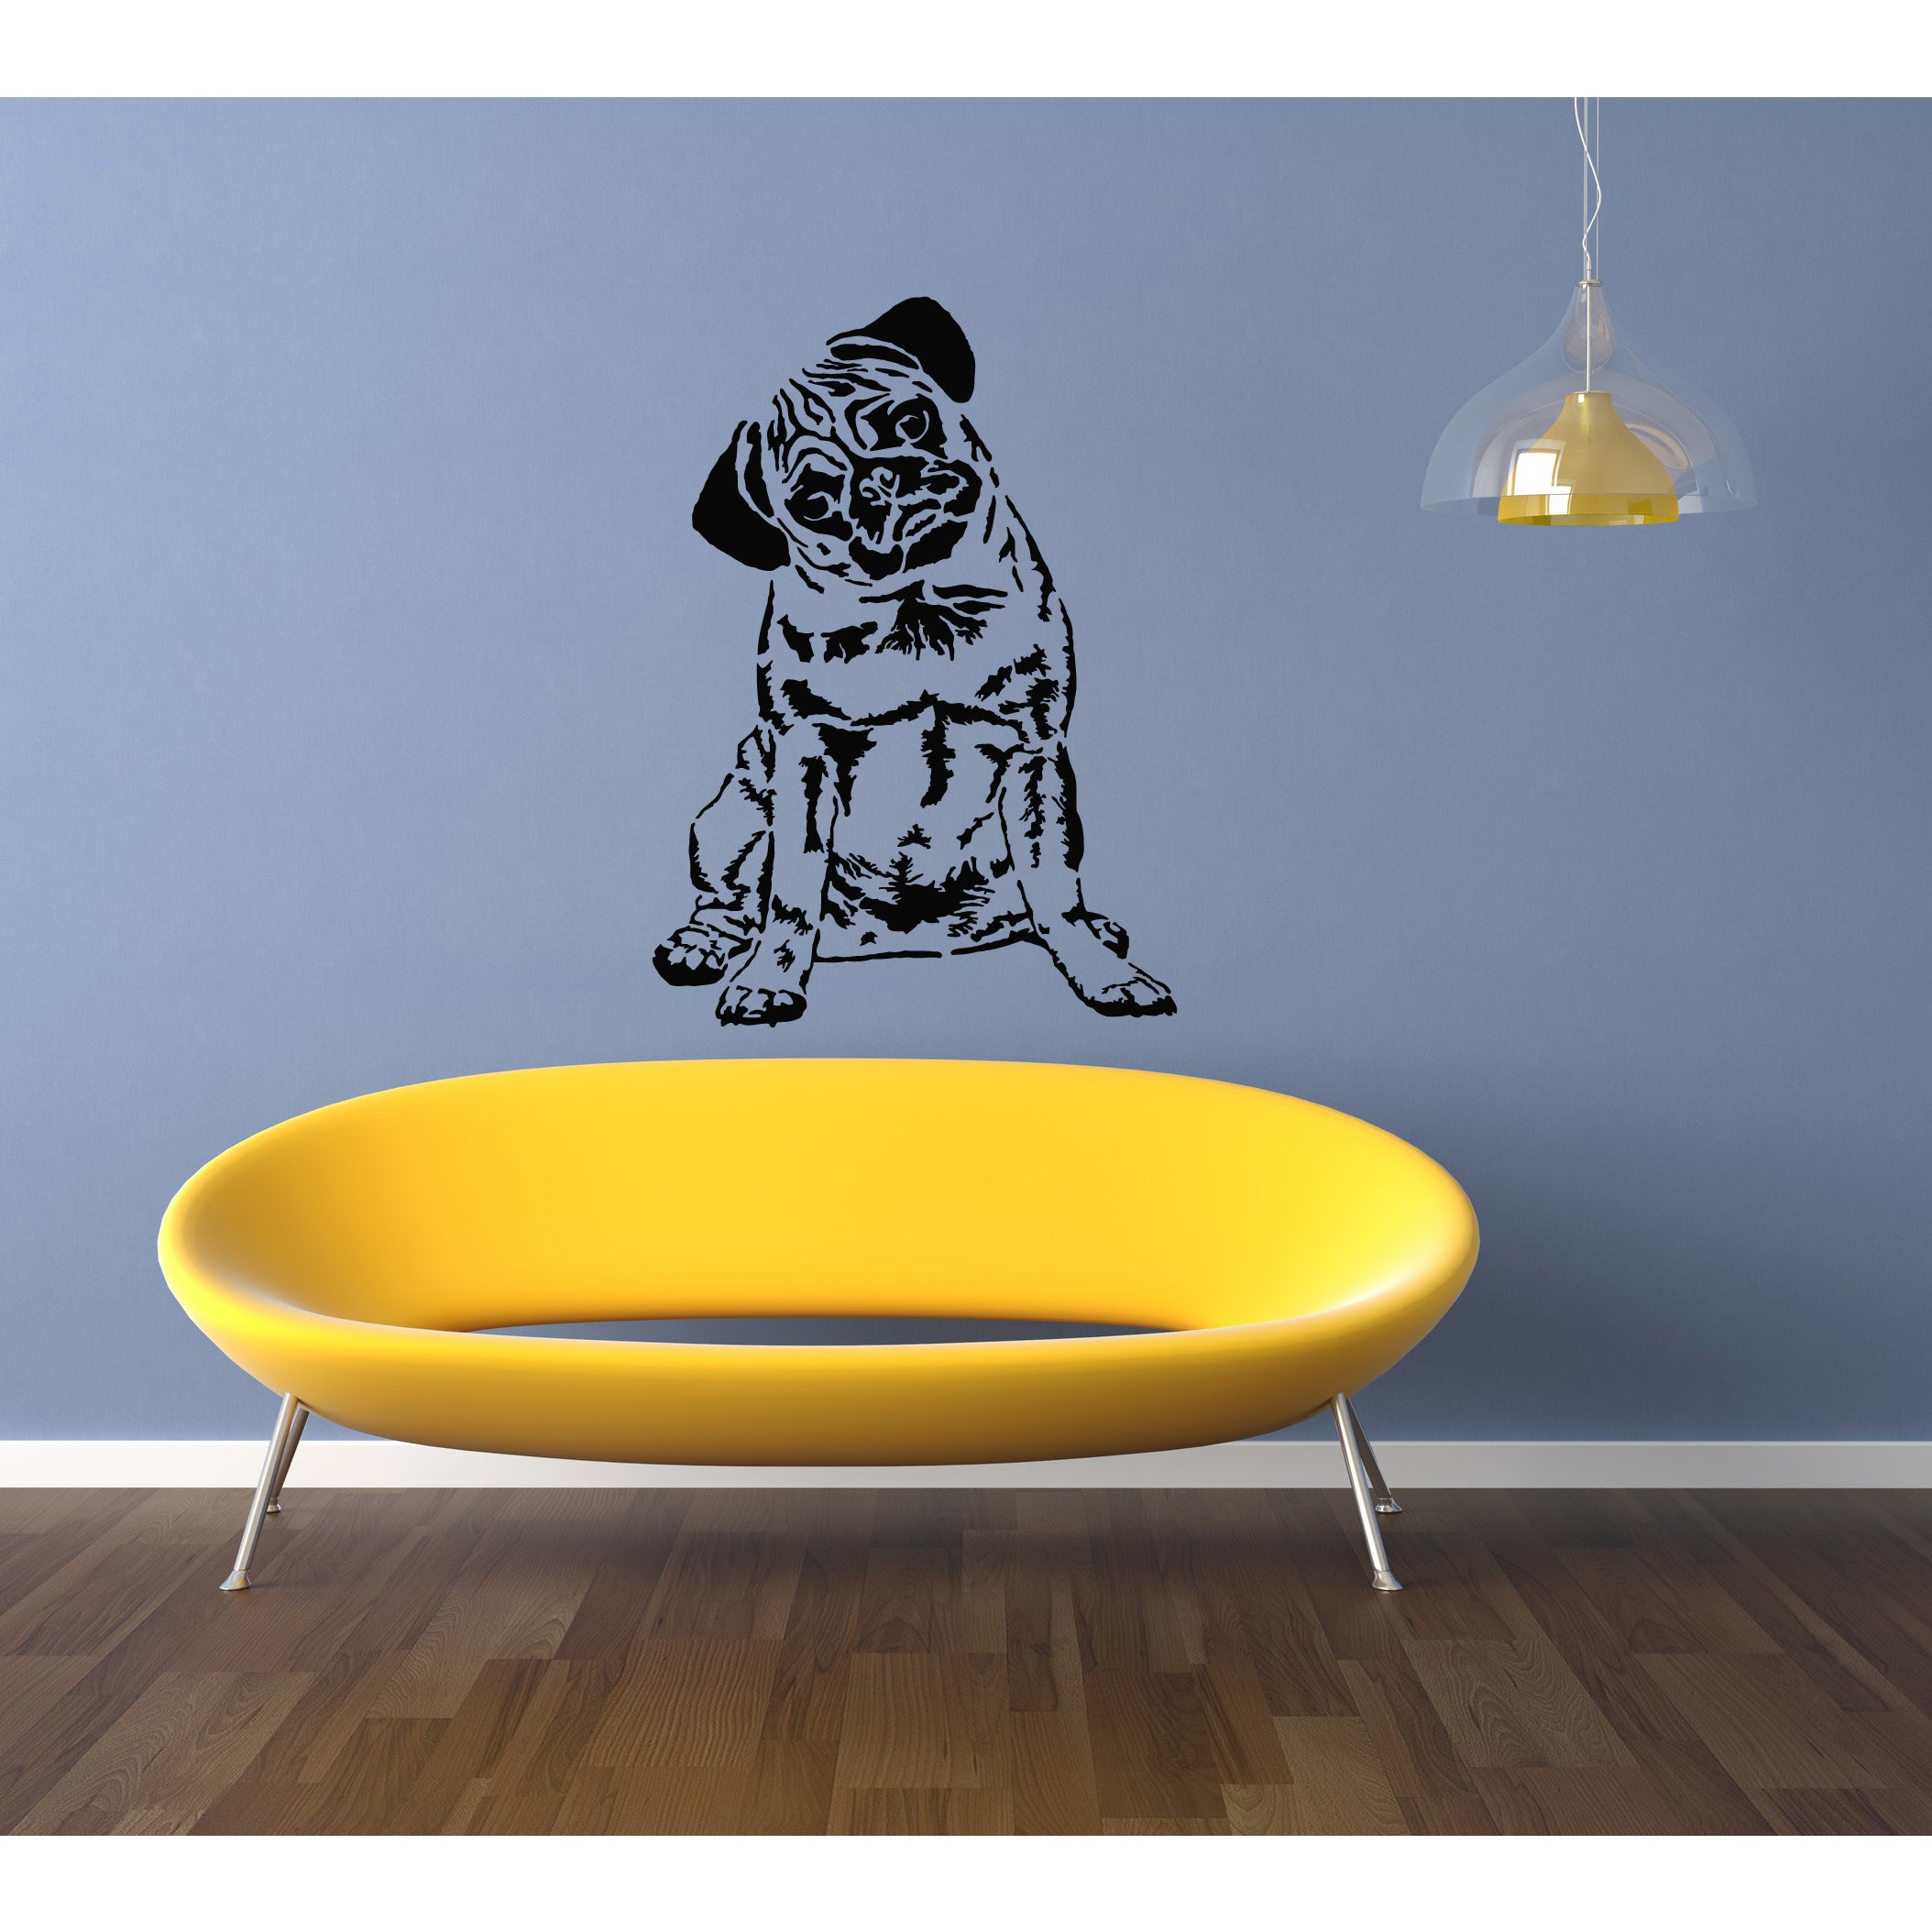 Pug Dog Puppy Breed Pet Wall Art Sticker Decal | eBay